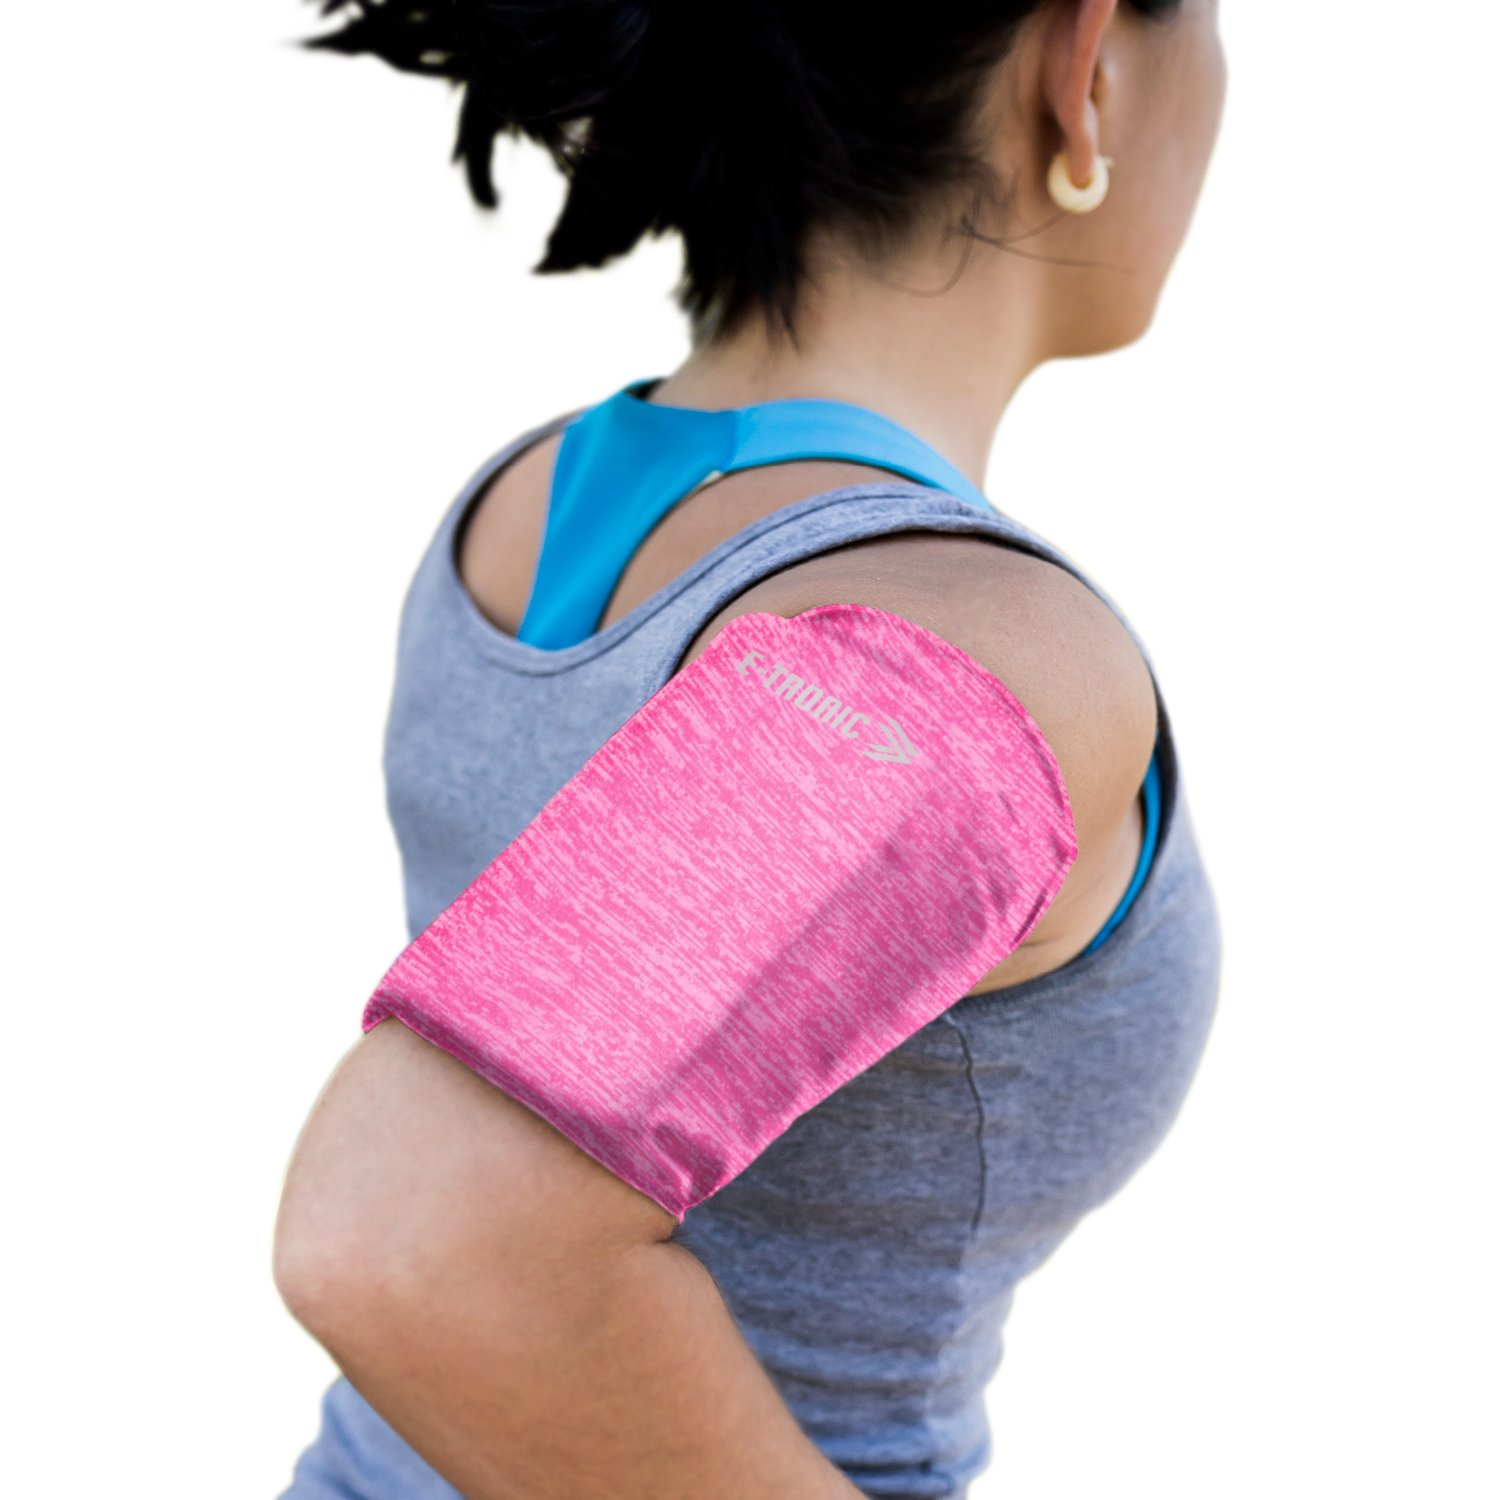 Phone Armband Sleeve: Best Running Sports PINK Arm Band Strap Holder Pouch Case for Exercise Workout Fits iPhone SE 6 6S 7 8 X Plus Android Samsung Galaxy S5 S6 S7 S8 S9 for Women, Girls & Men (Large)